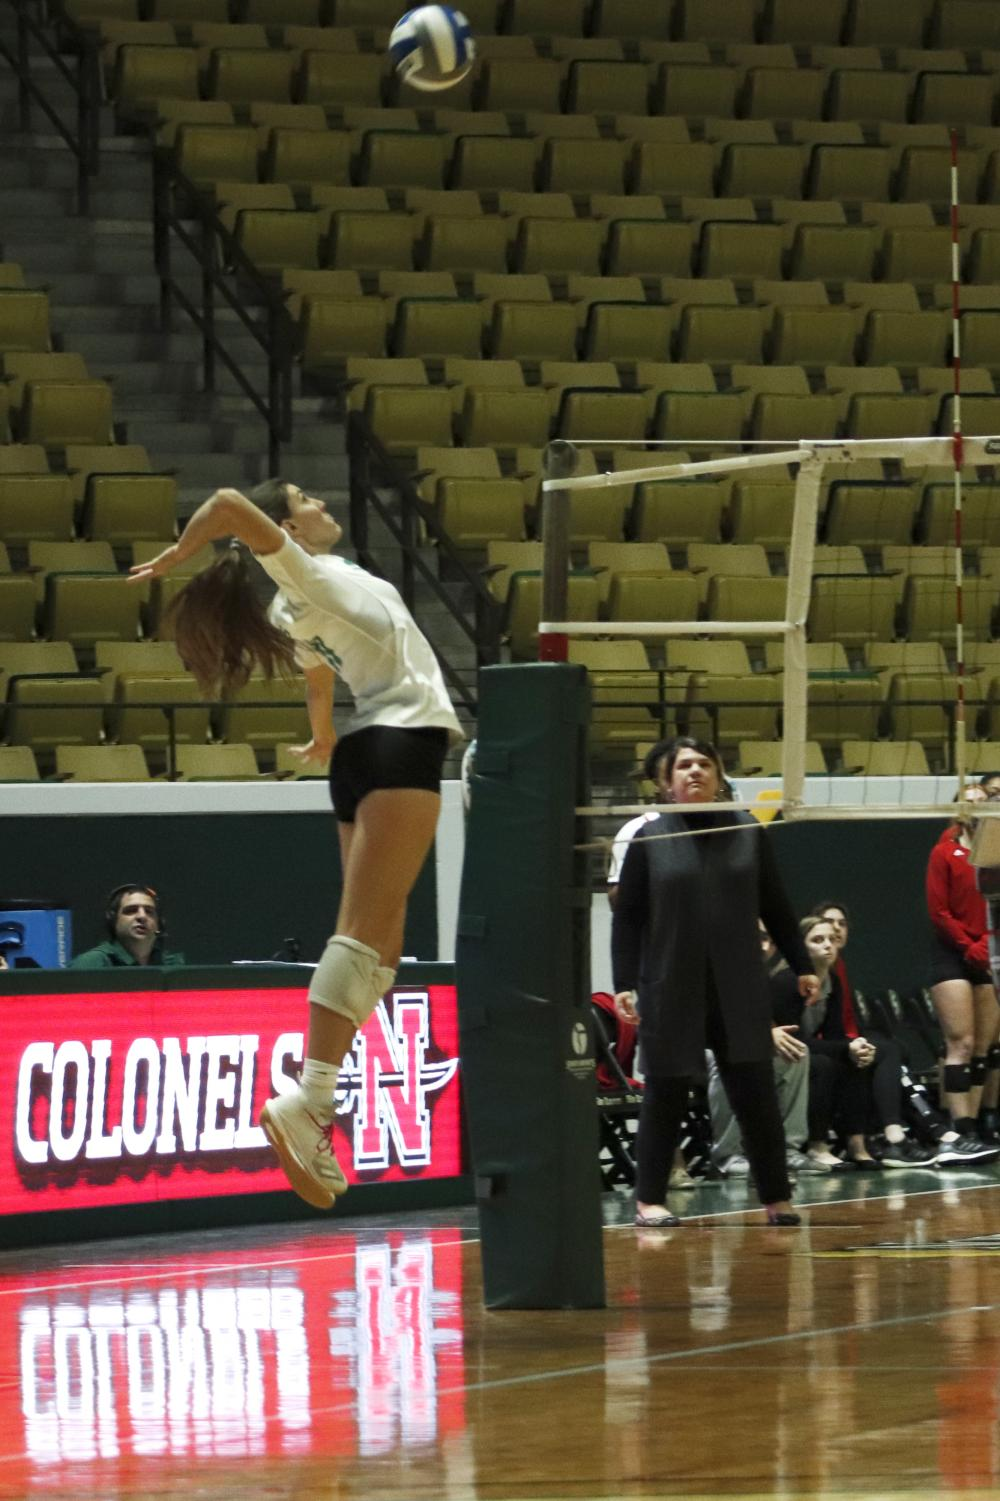 Freshman defensive specialist Lizzy Low defends against Nicholls State University. The Lady Lions won 14 games in the 2019 season improving their win total by 12 since hiring head coach Jeremy White.